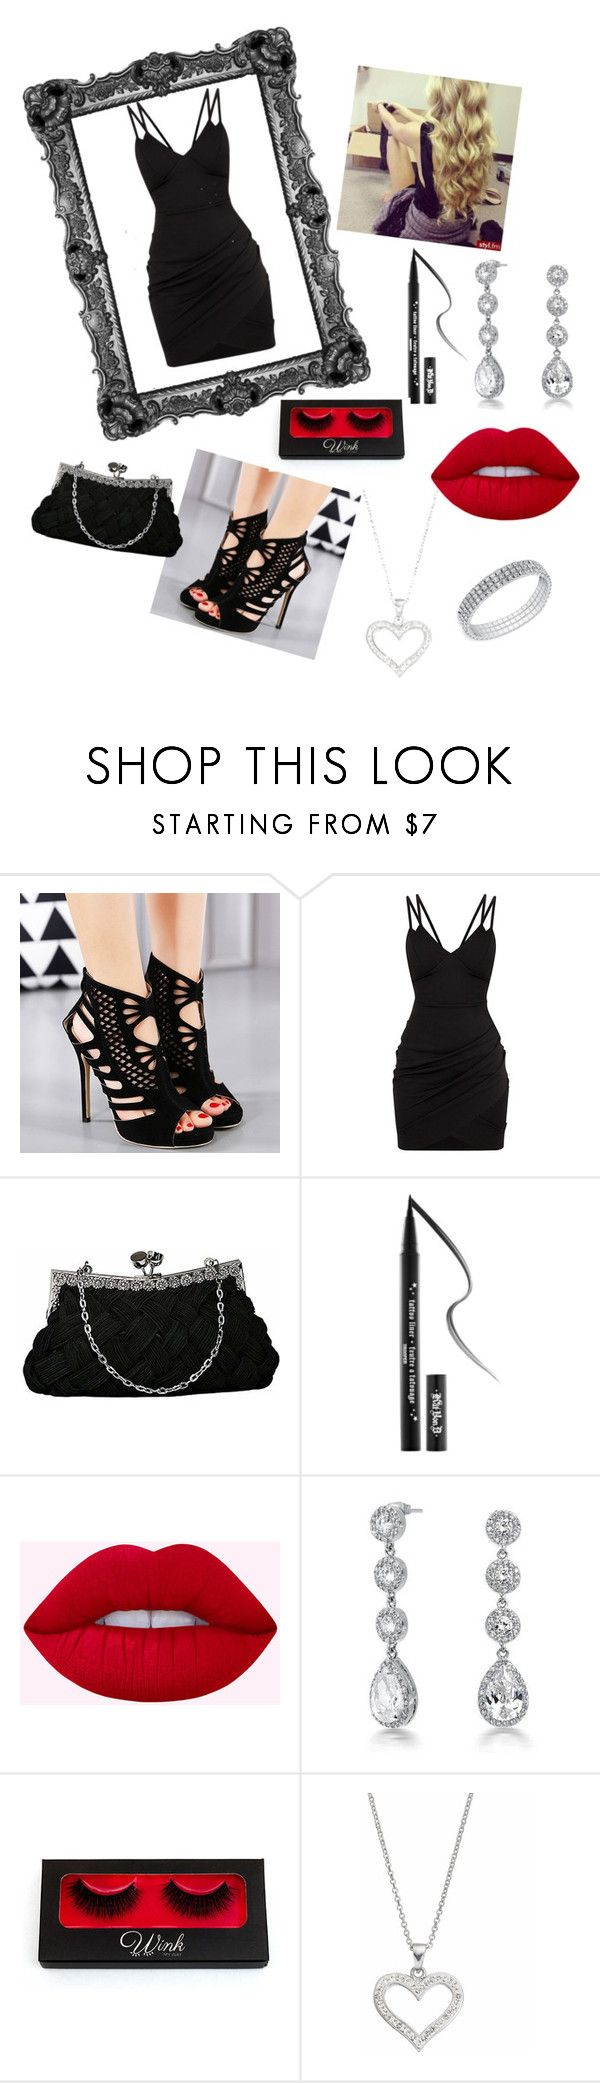 """""""Date night"""" by anakaconley on Polyvore featuring Kat Von D, Bling Jewelry and Silver Luxuries"""